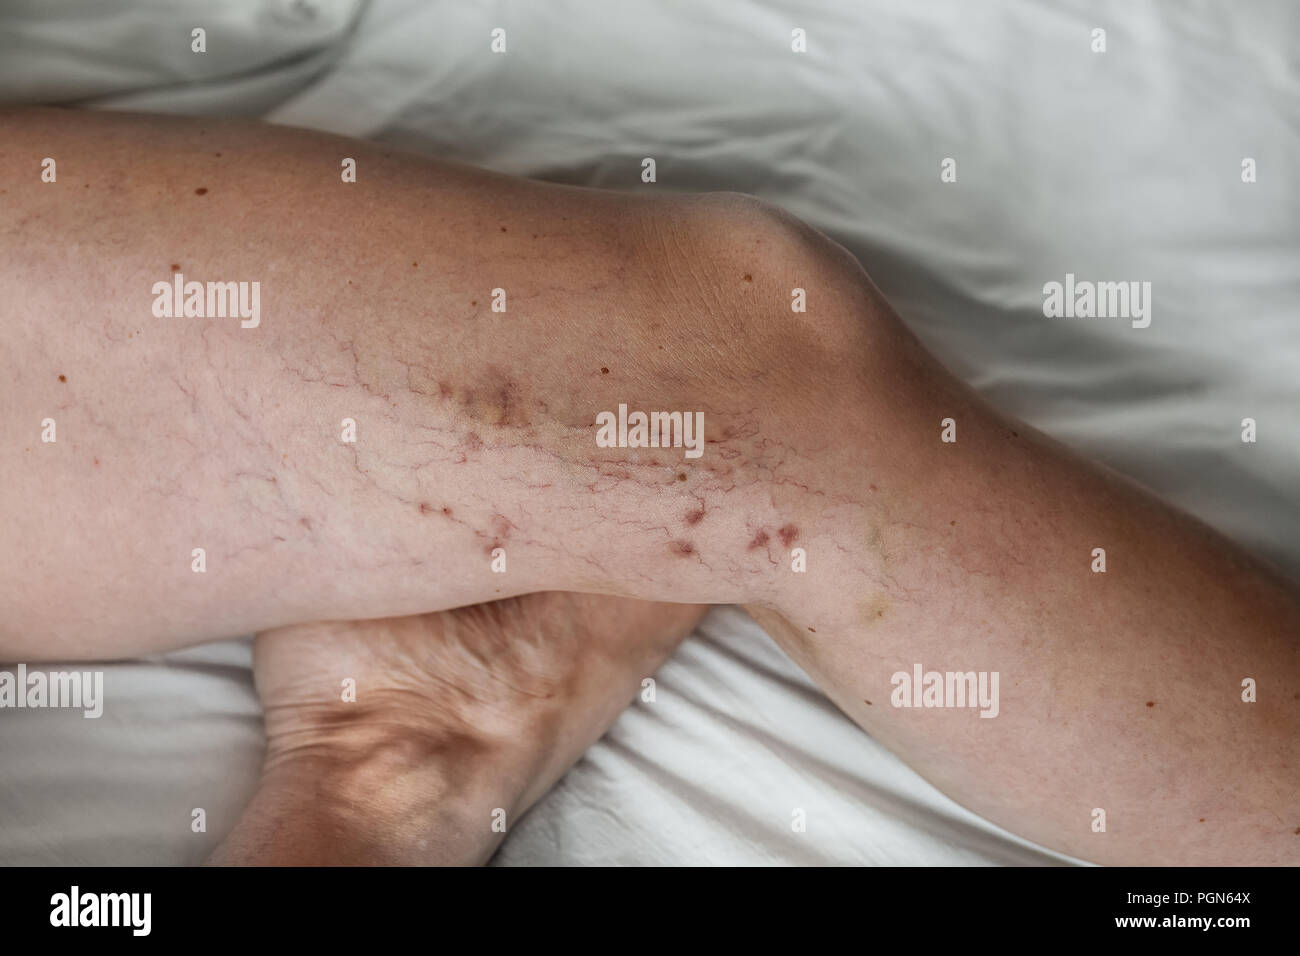 the disease varicose veins on a womans legs - Stock Image